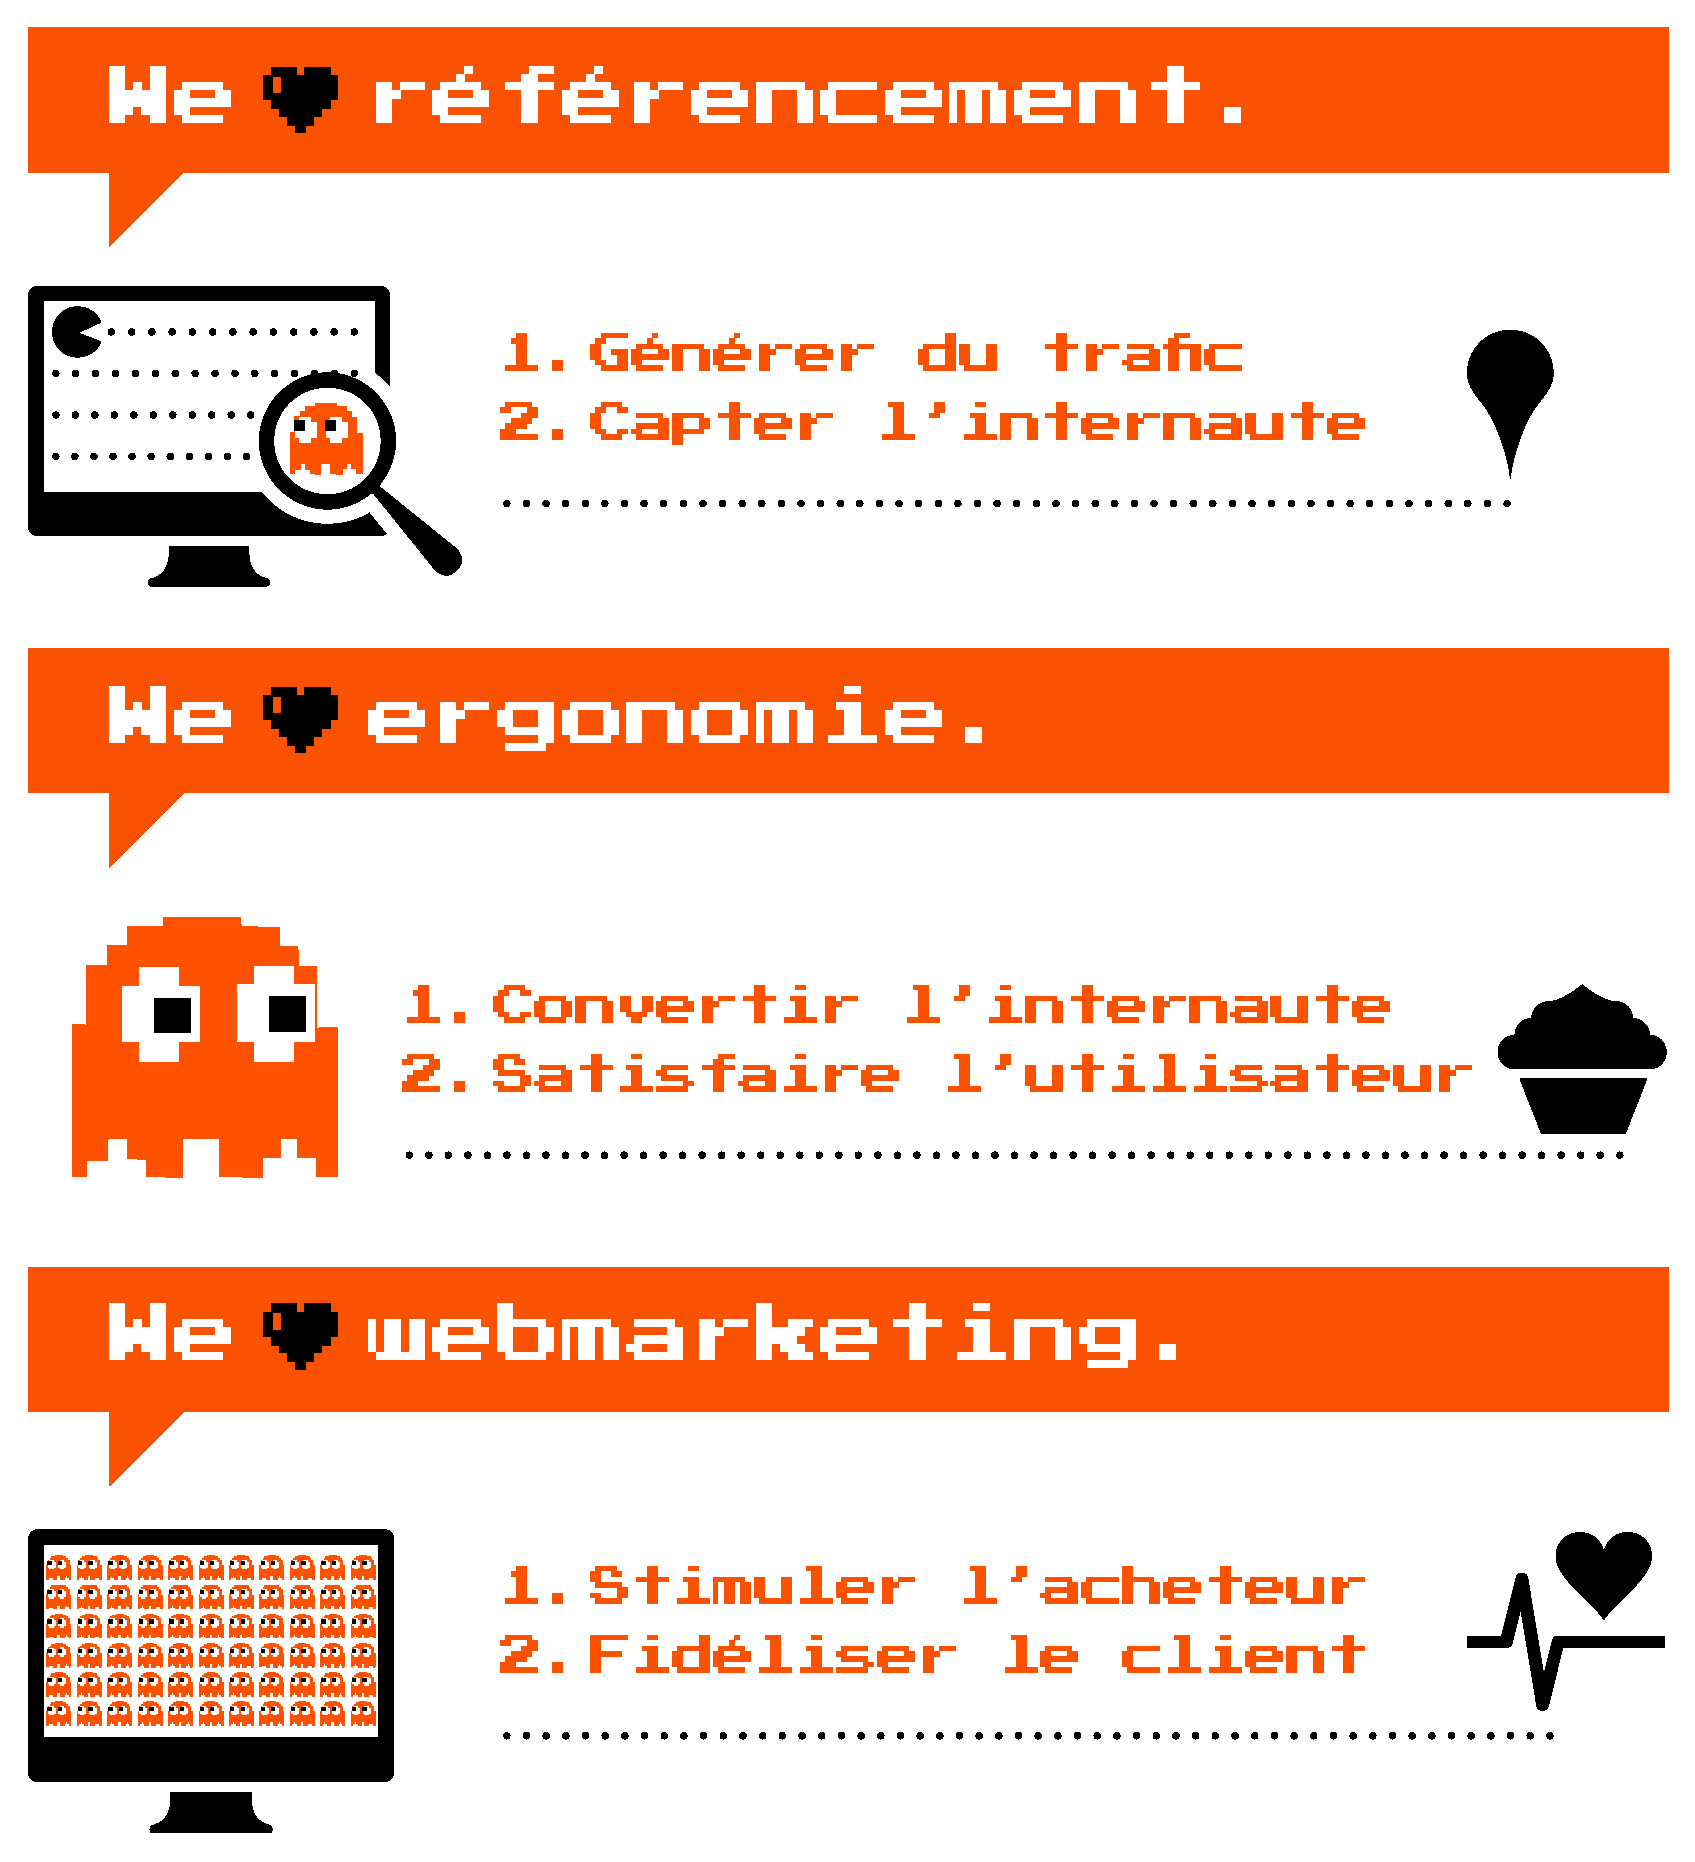 strategie-ecommerce-webmarketing-convertir-est-encore-possible-conversion-fidelisation